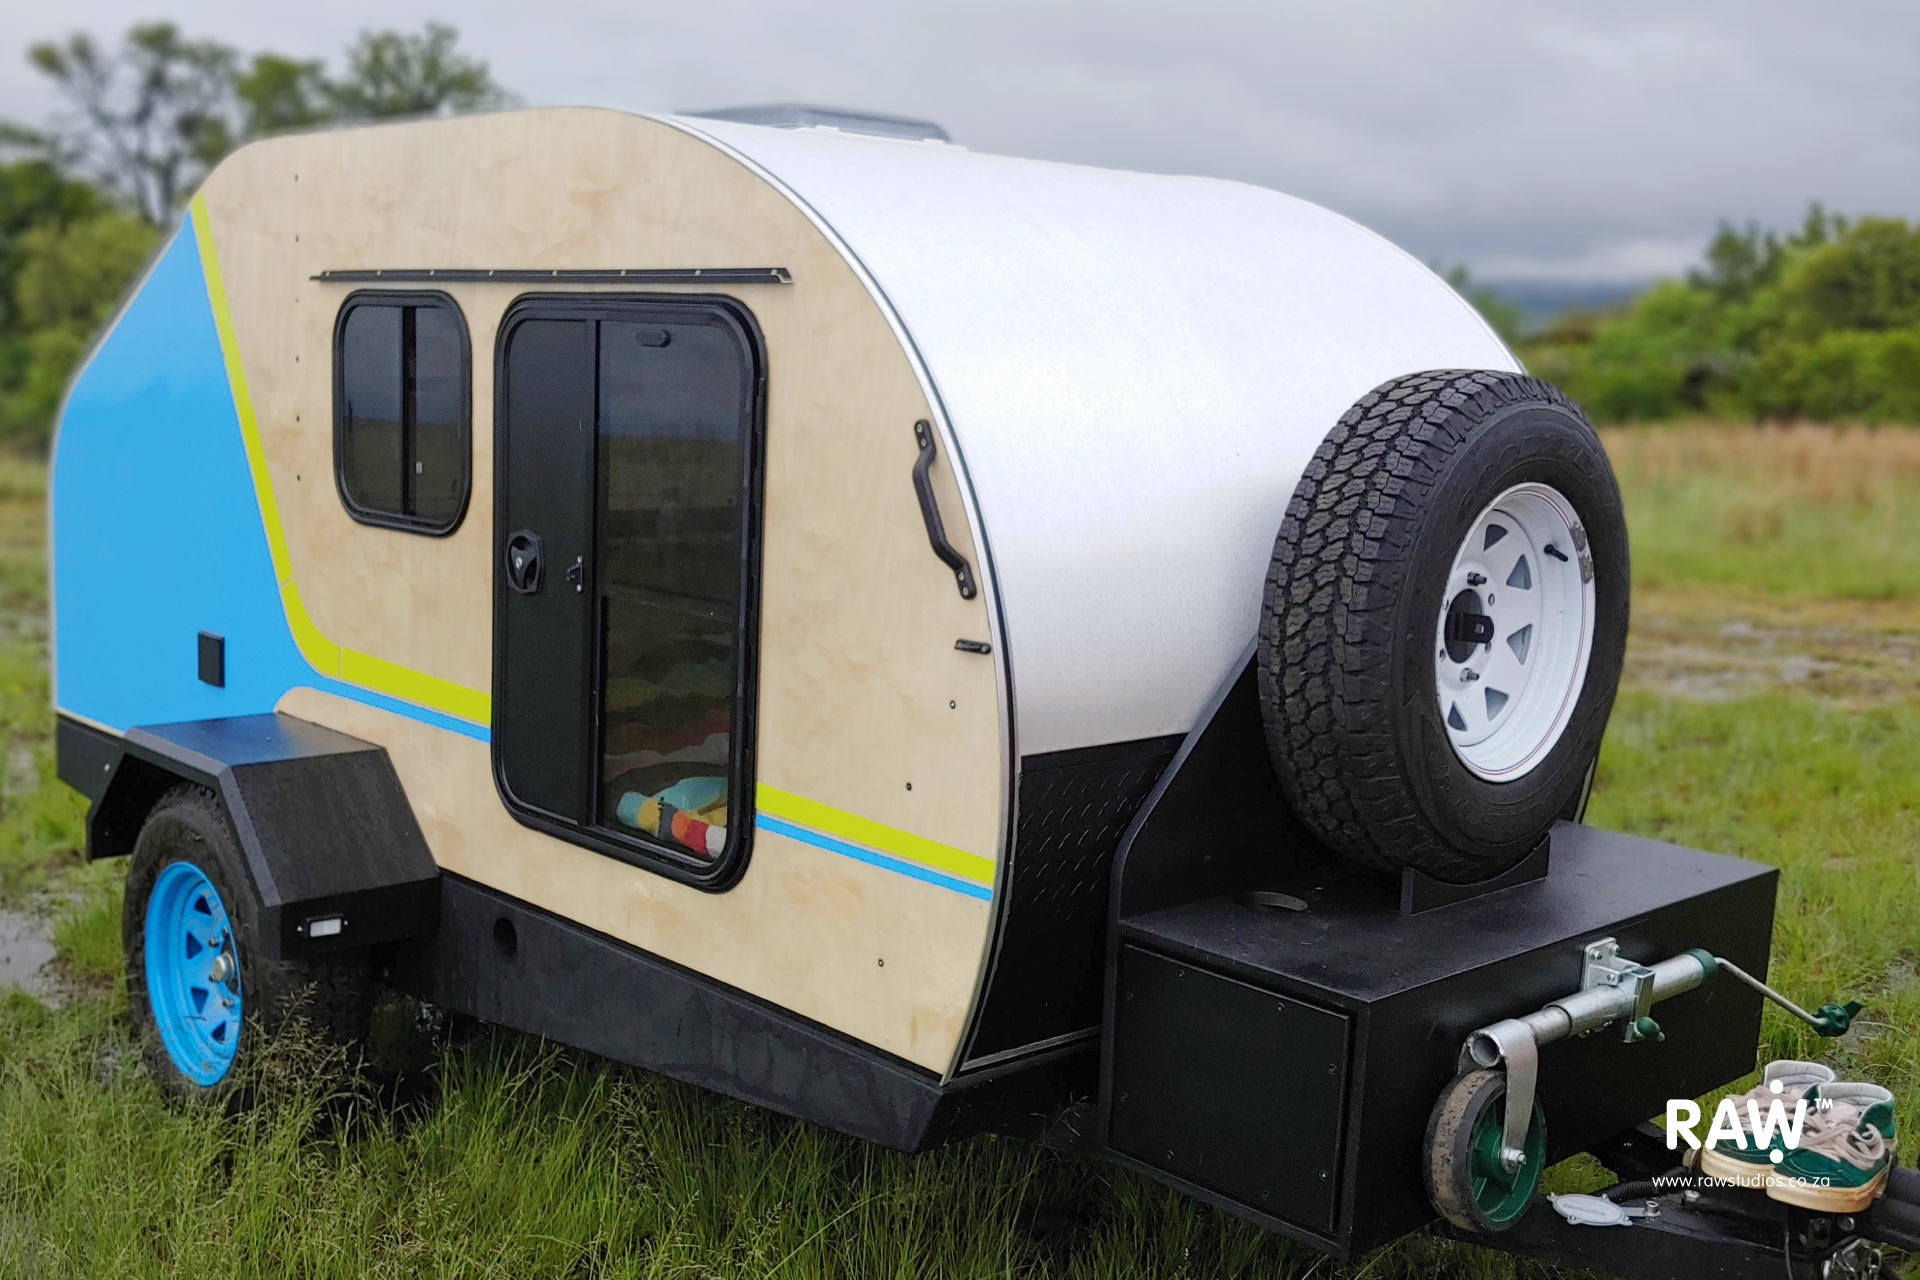 RAW Teardrop Camper - functional camper trailer made by RAW